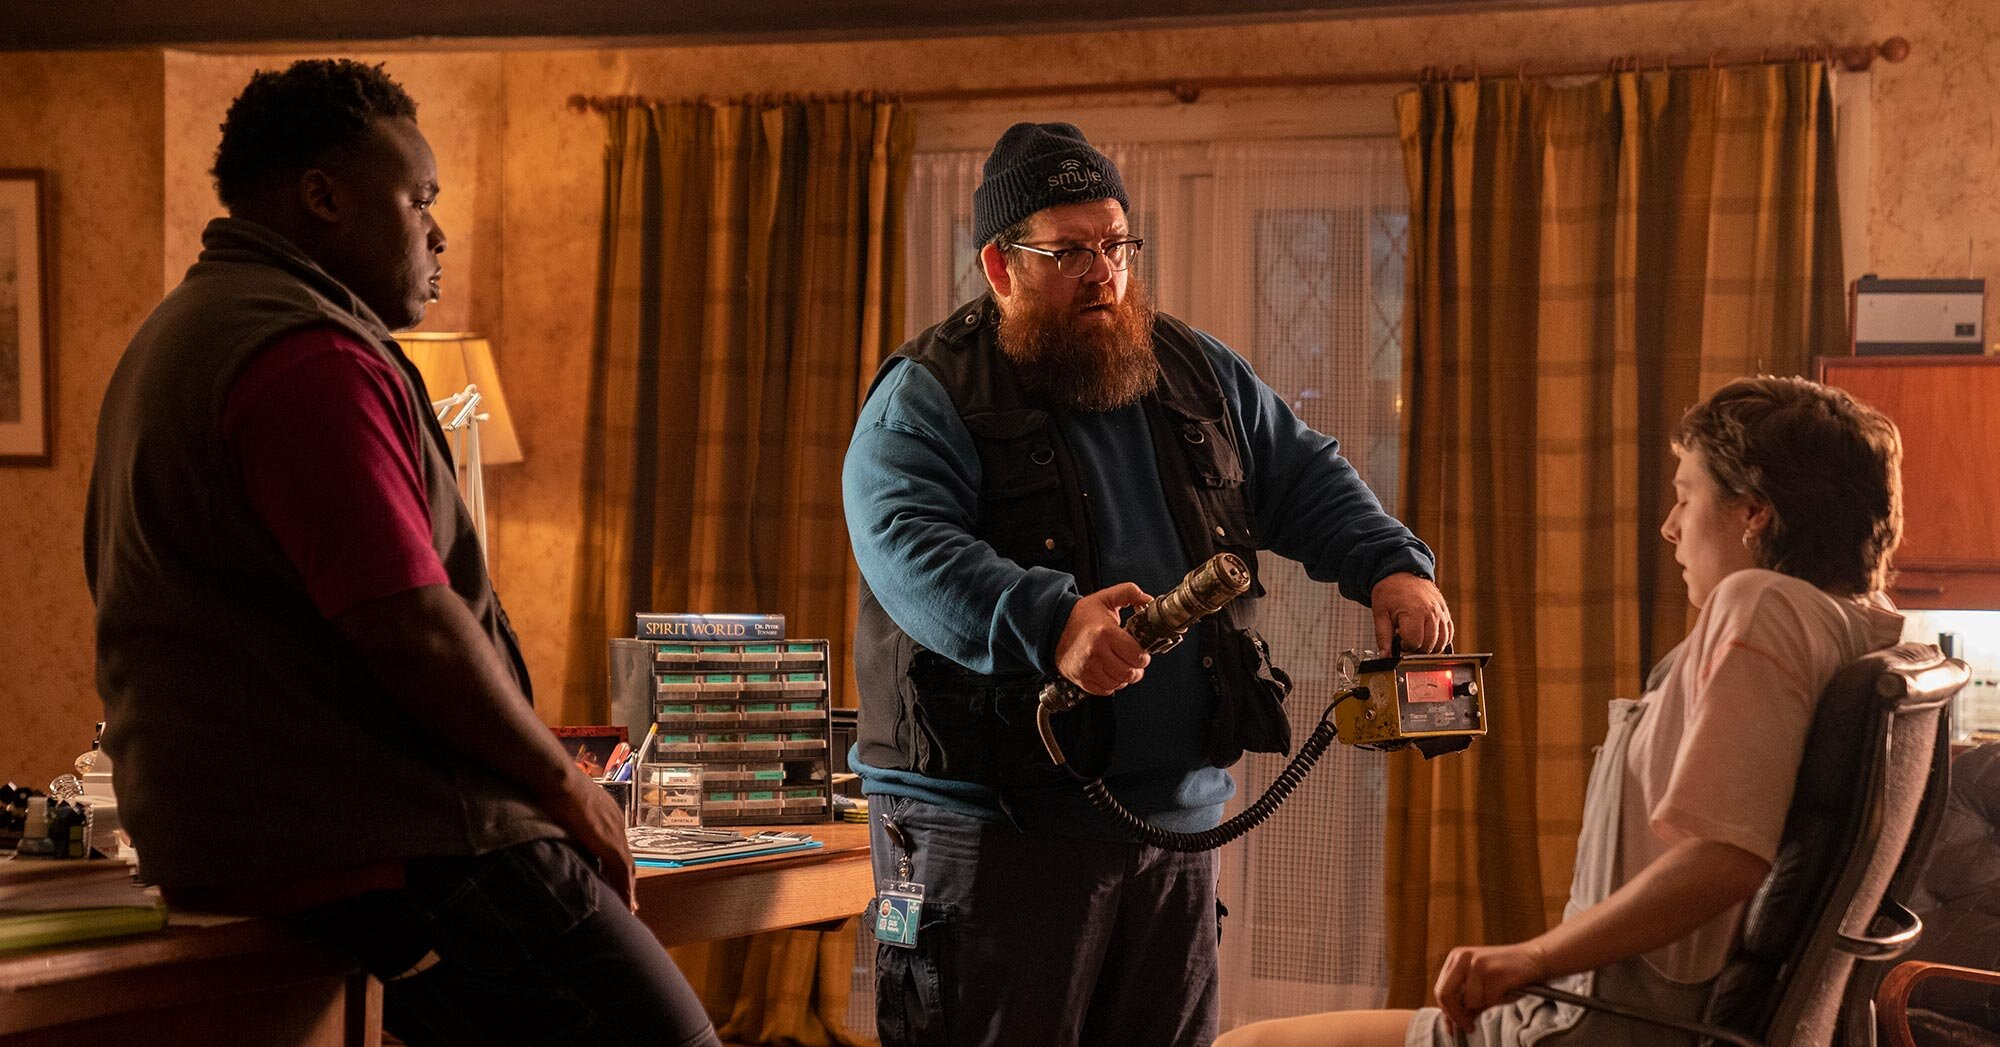 'Truth Seekers' stars Nick Frost and Samson Kayo give us their spooky movie recs